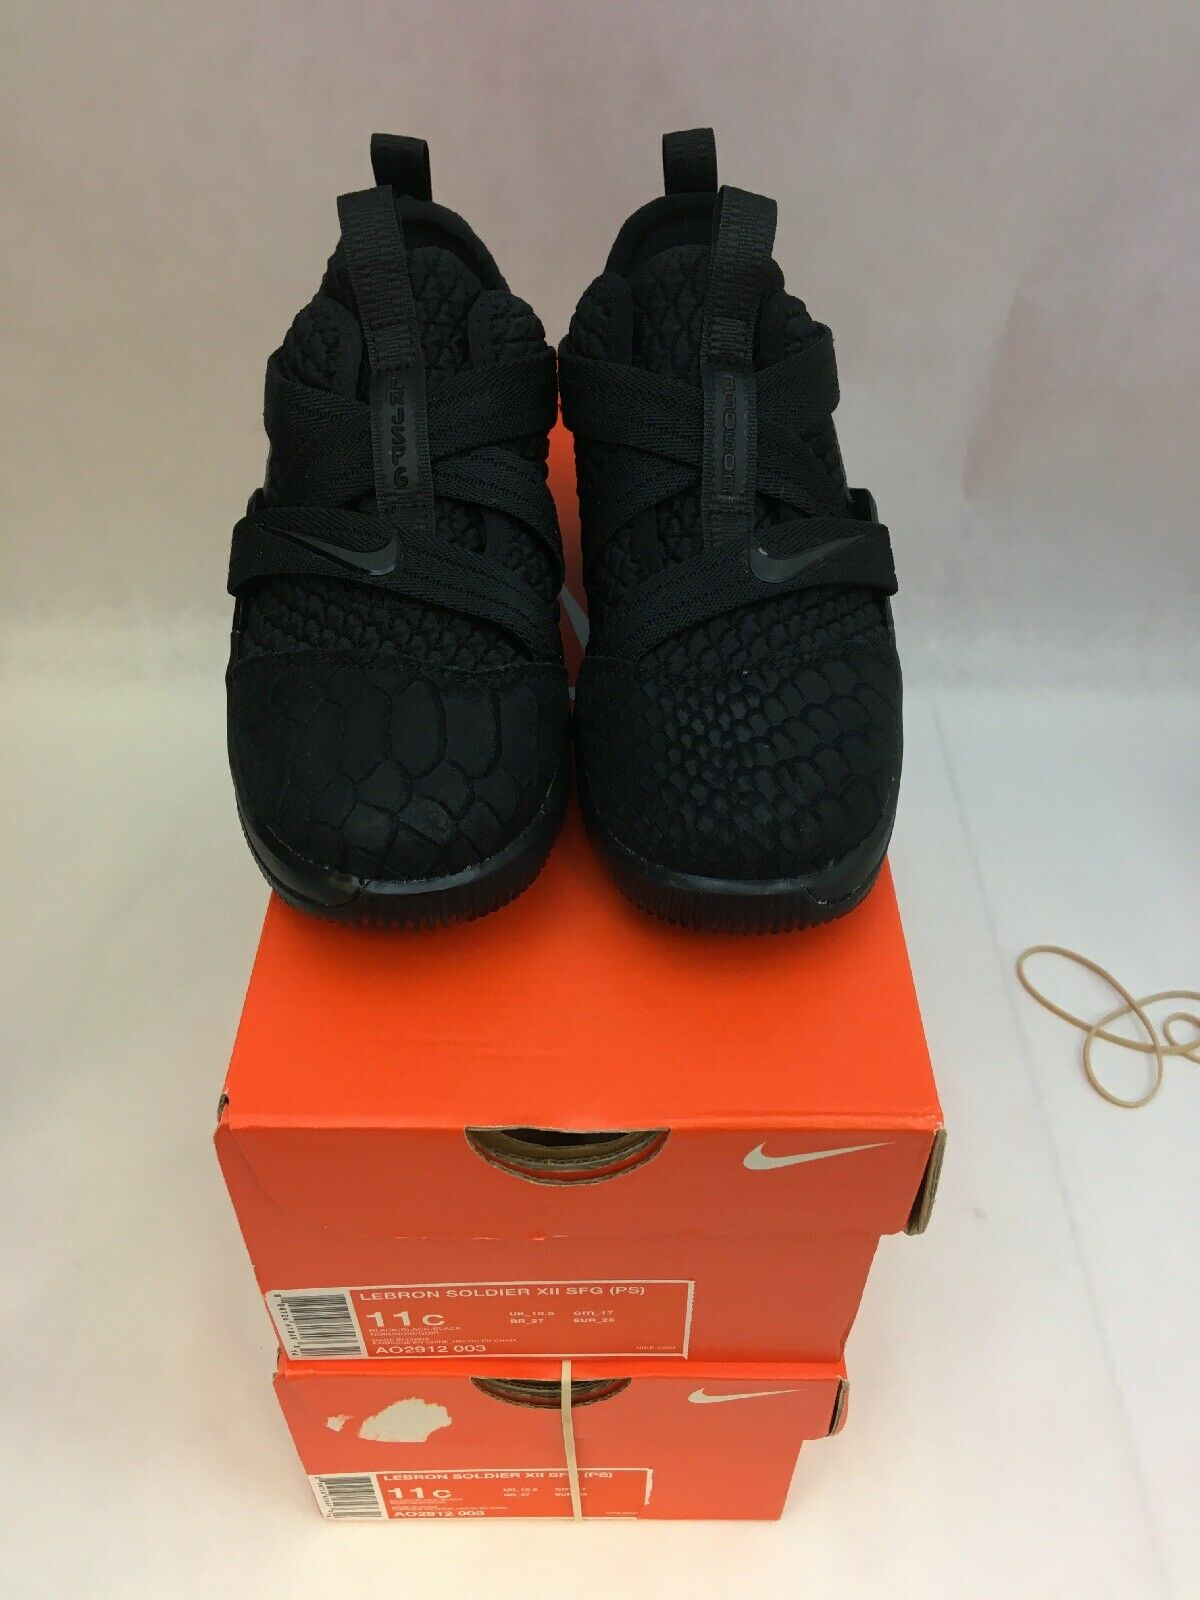 Lebron Soldier Xii Sfg (ps) Size 11C